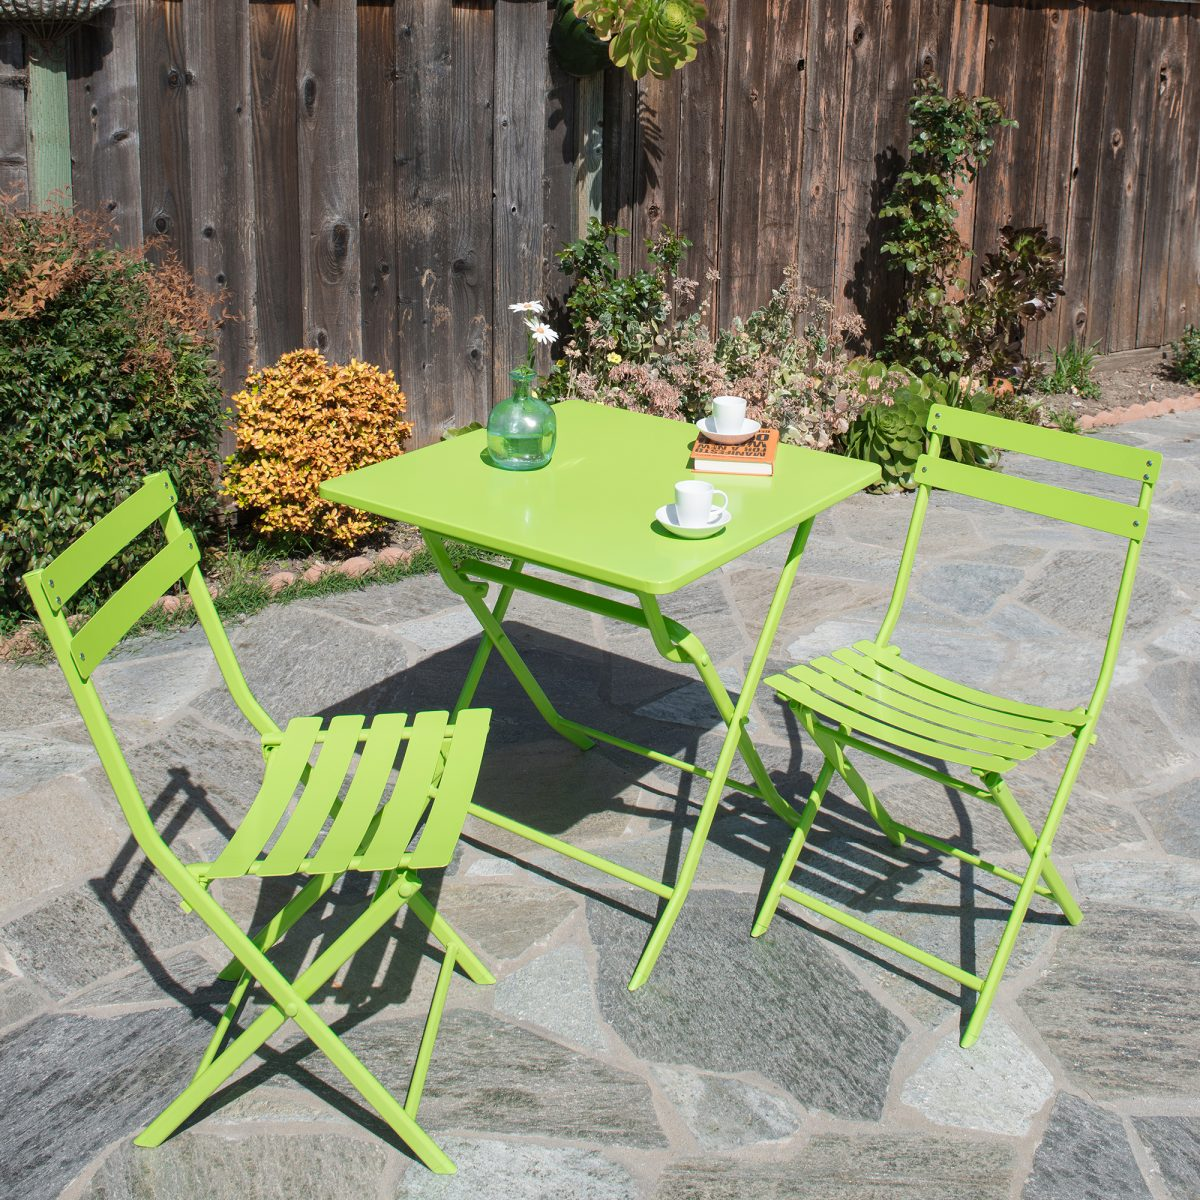 lime green bistro chairs chair design uk corvus rio 3 piece square steel patio folding